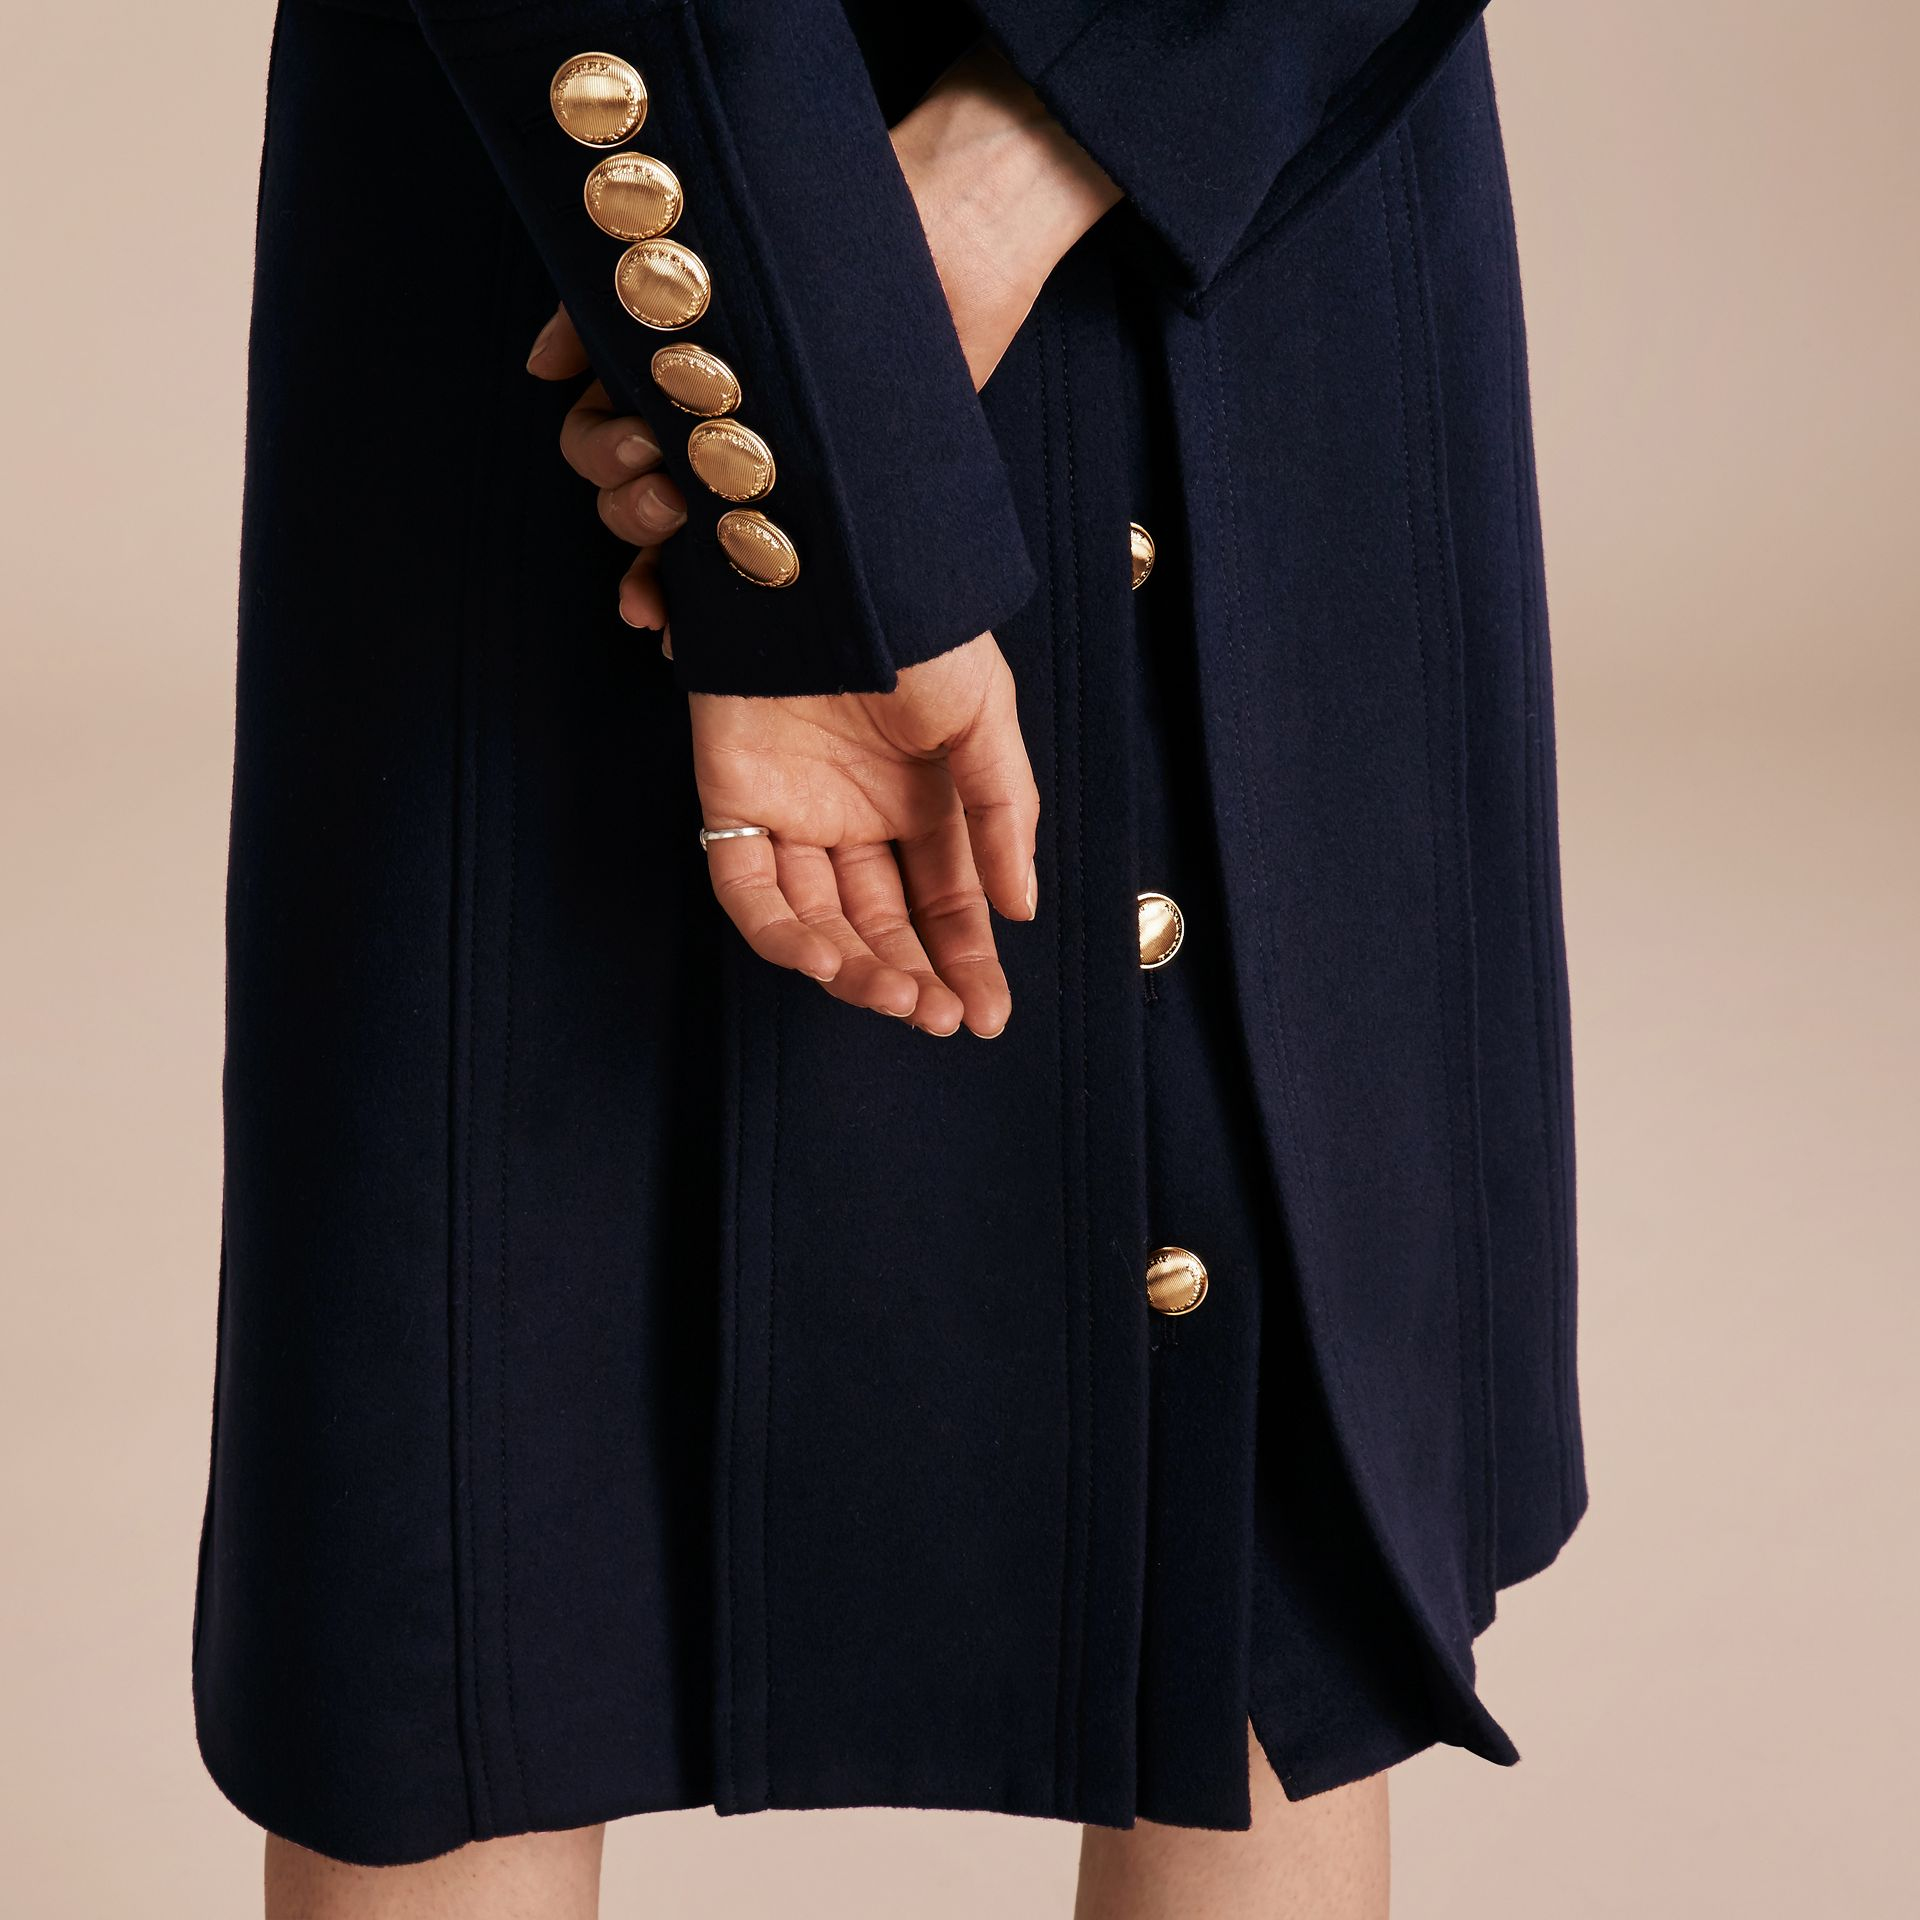 Navy Wool Cashmere Trench Coat with Detachable Fur Collar - gallery image 5